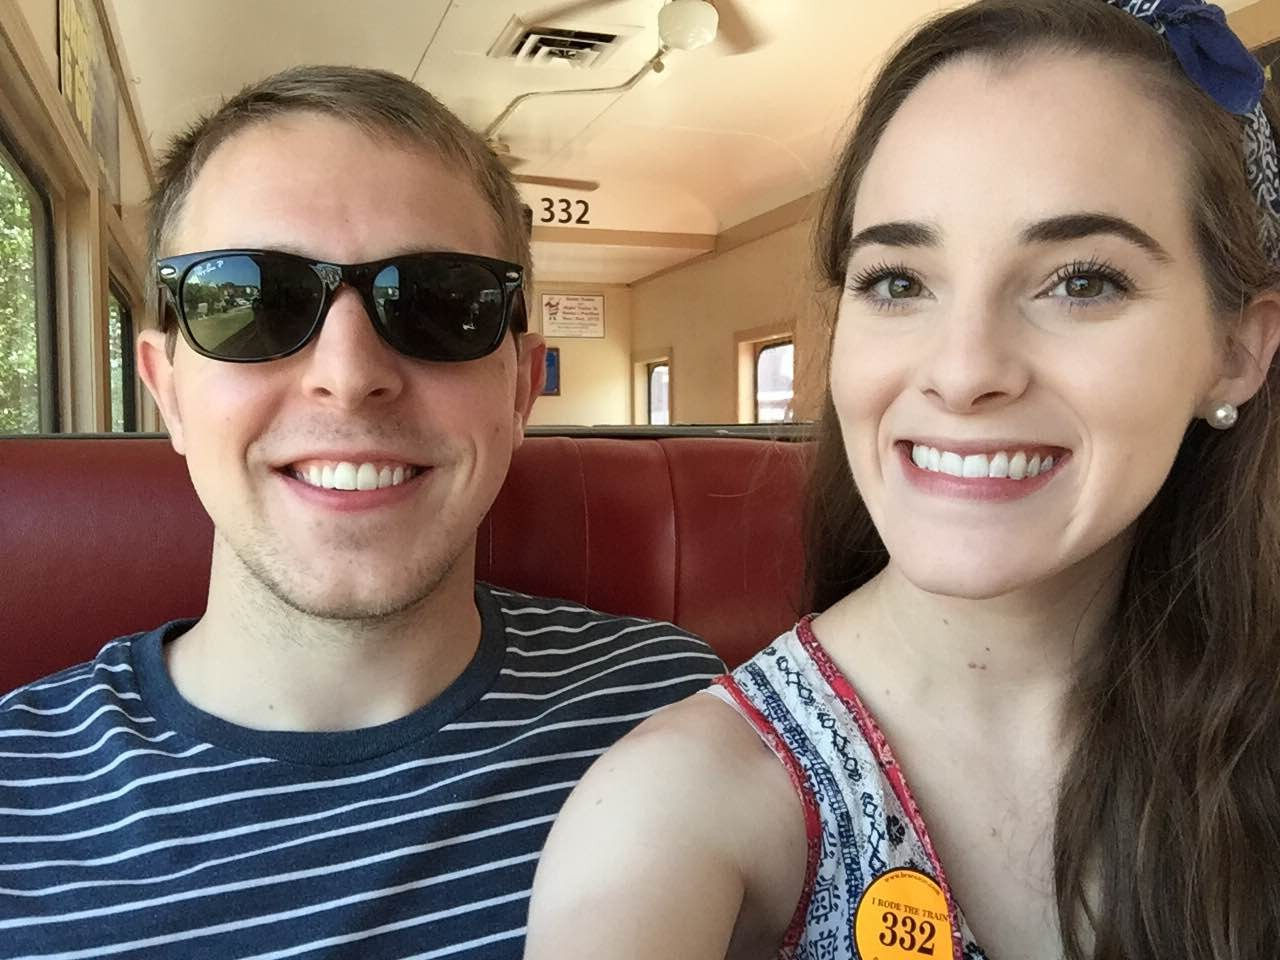 For the 4th of July, we took a train ride from Blue Ridge to Tennessee!